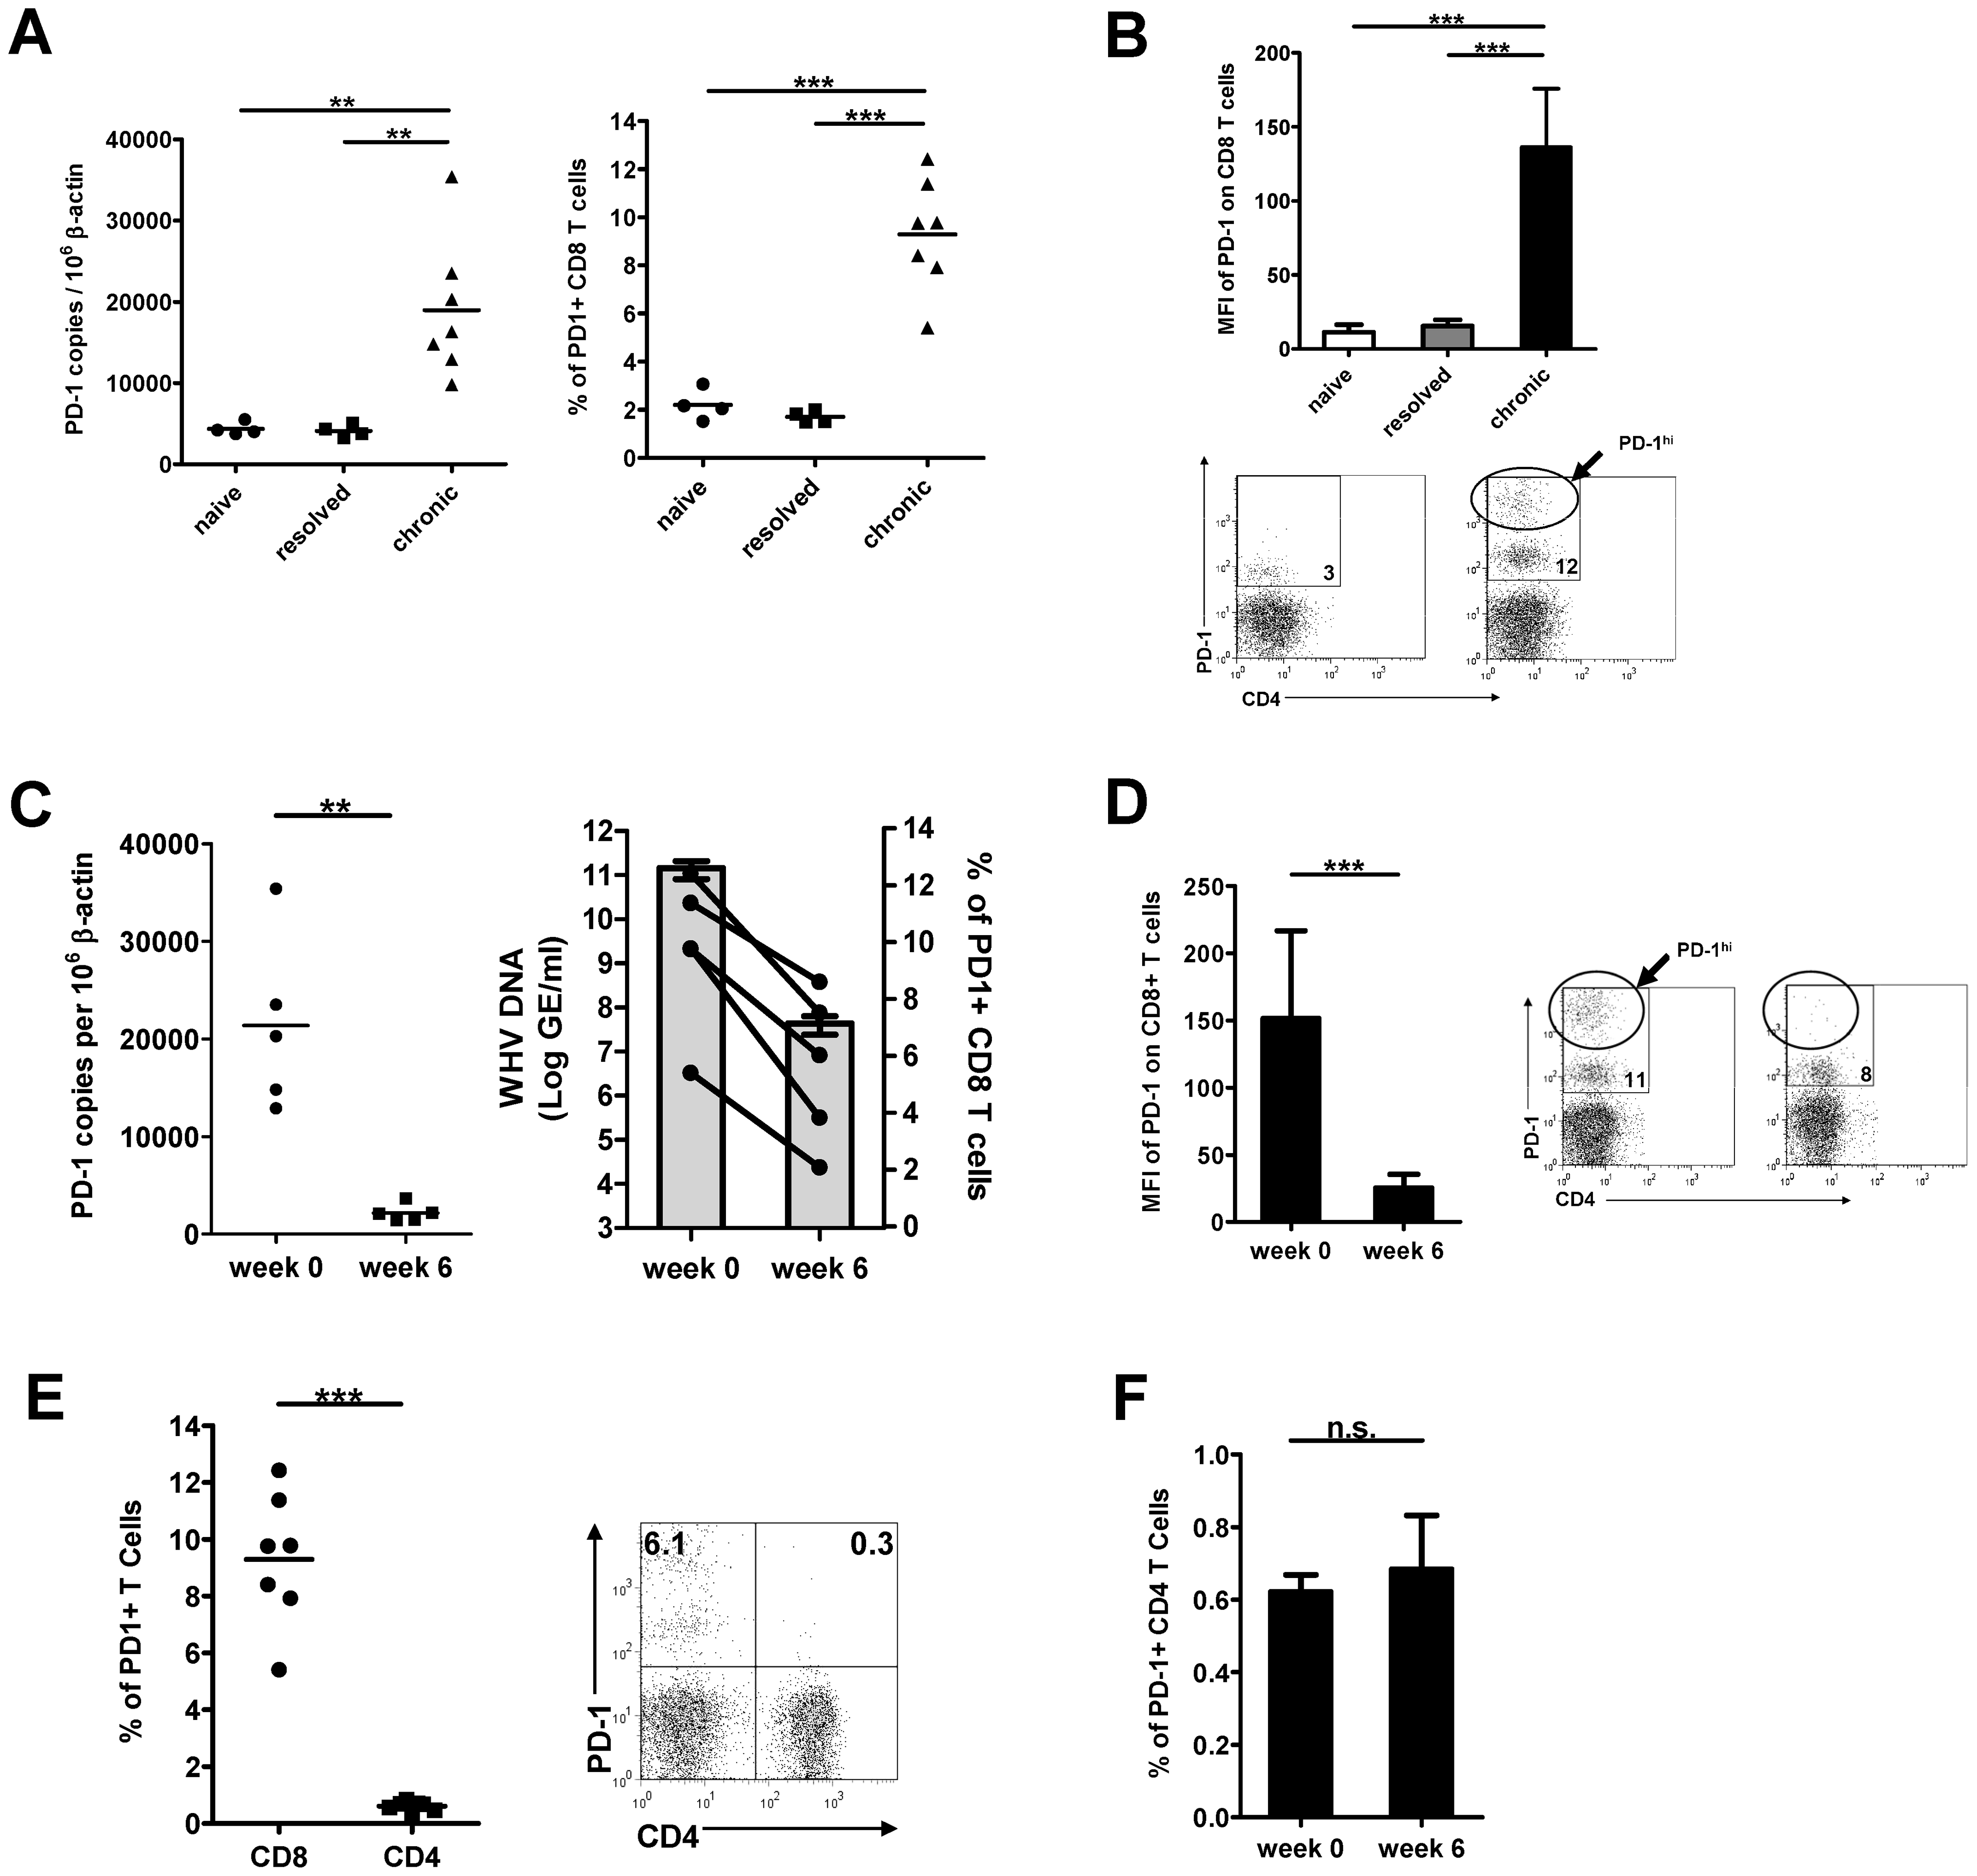 Expression of PD-1 on PBMCs and T cells during chronic WHV infection.